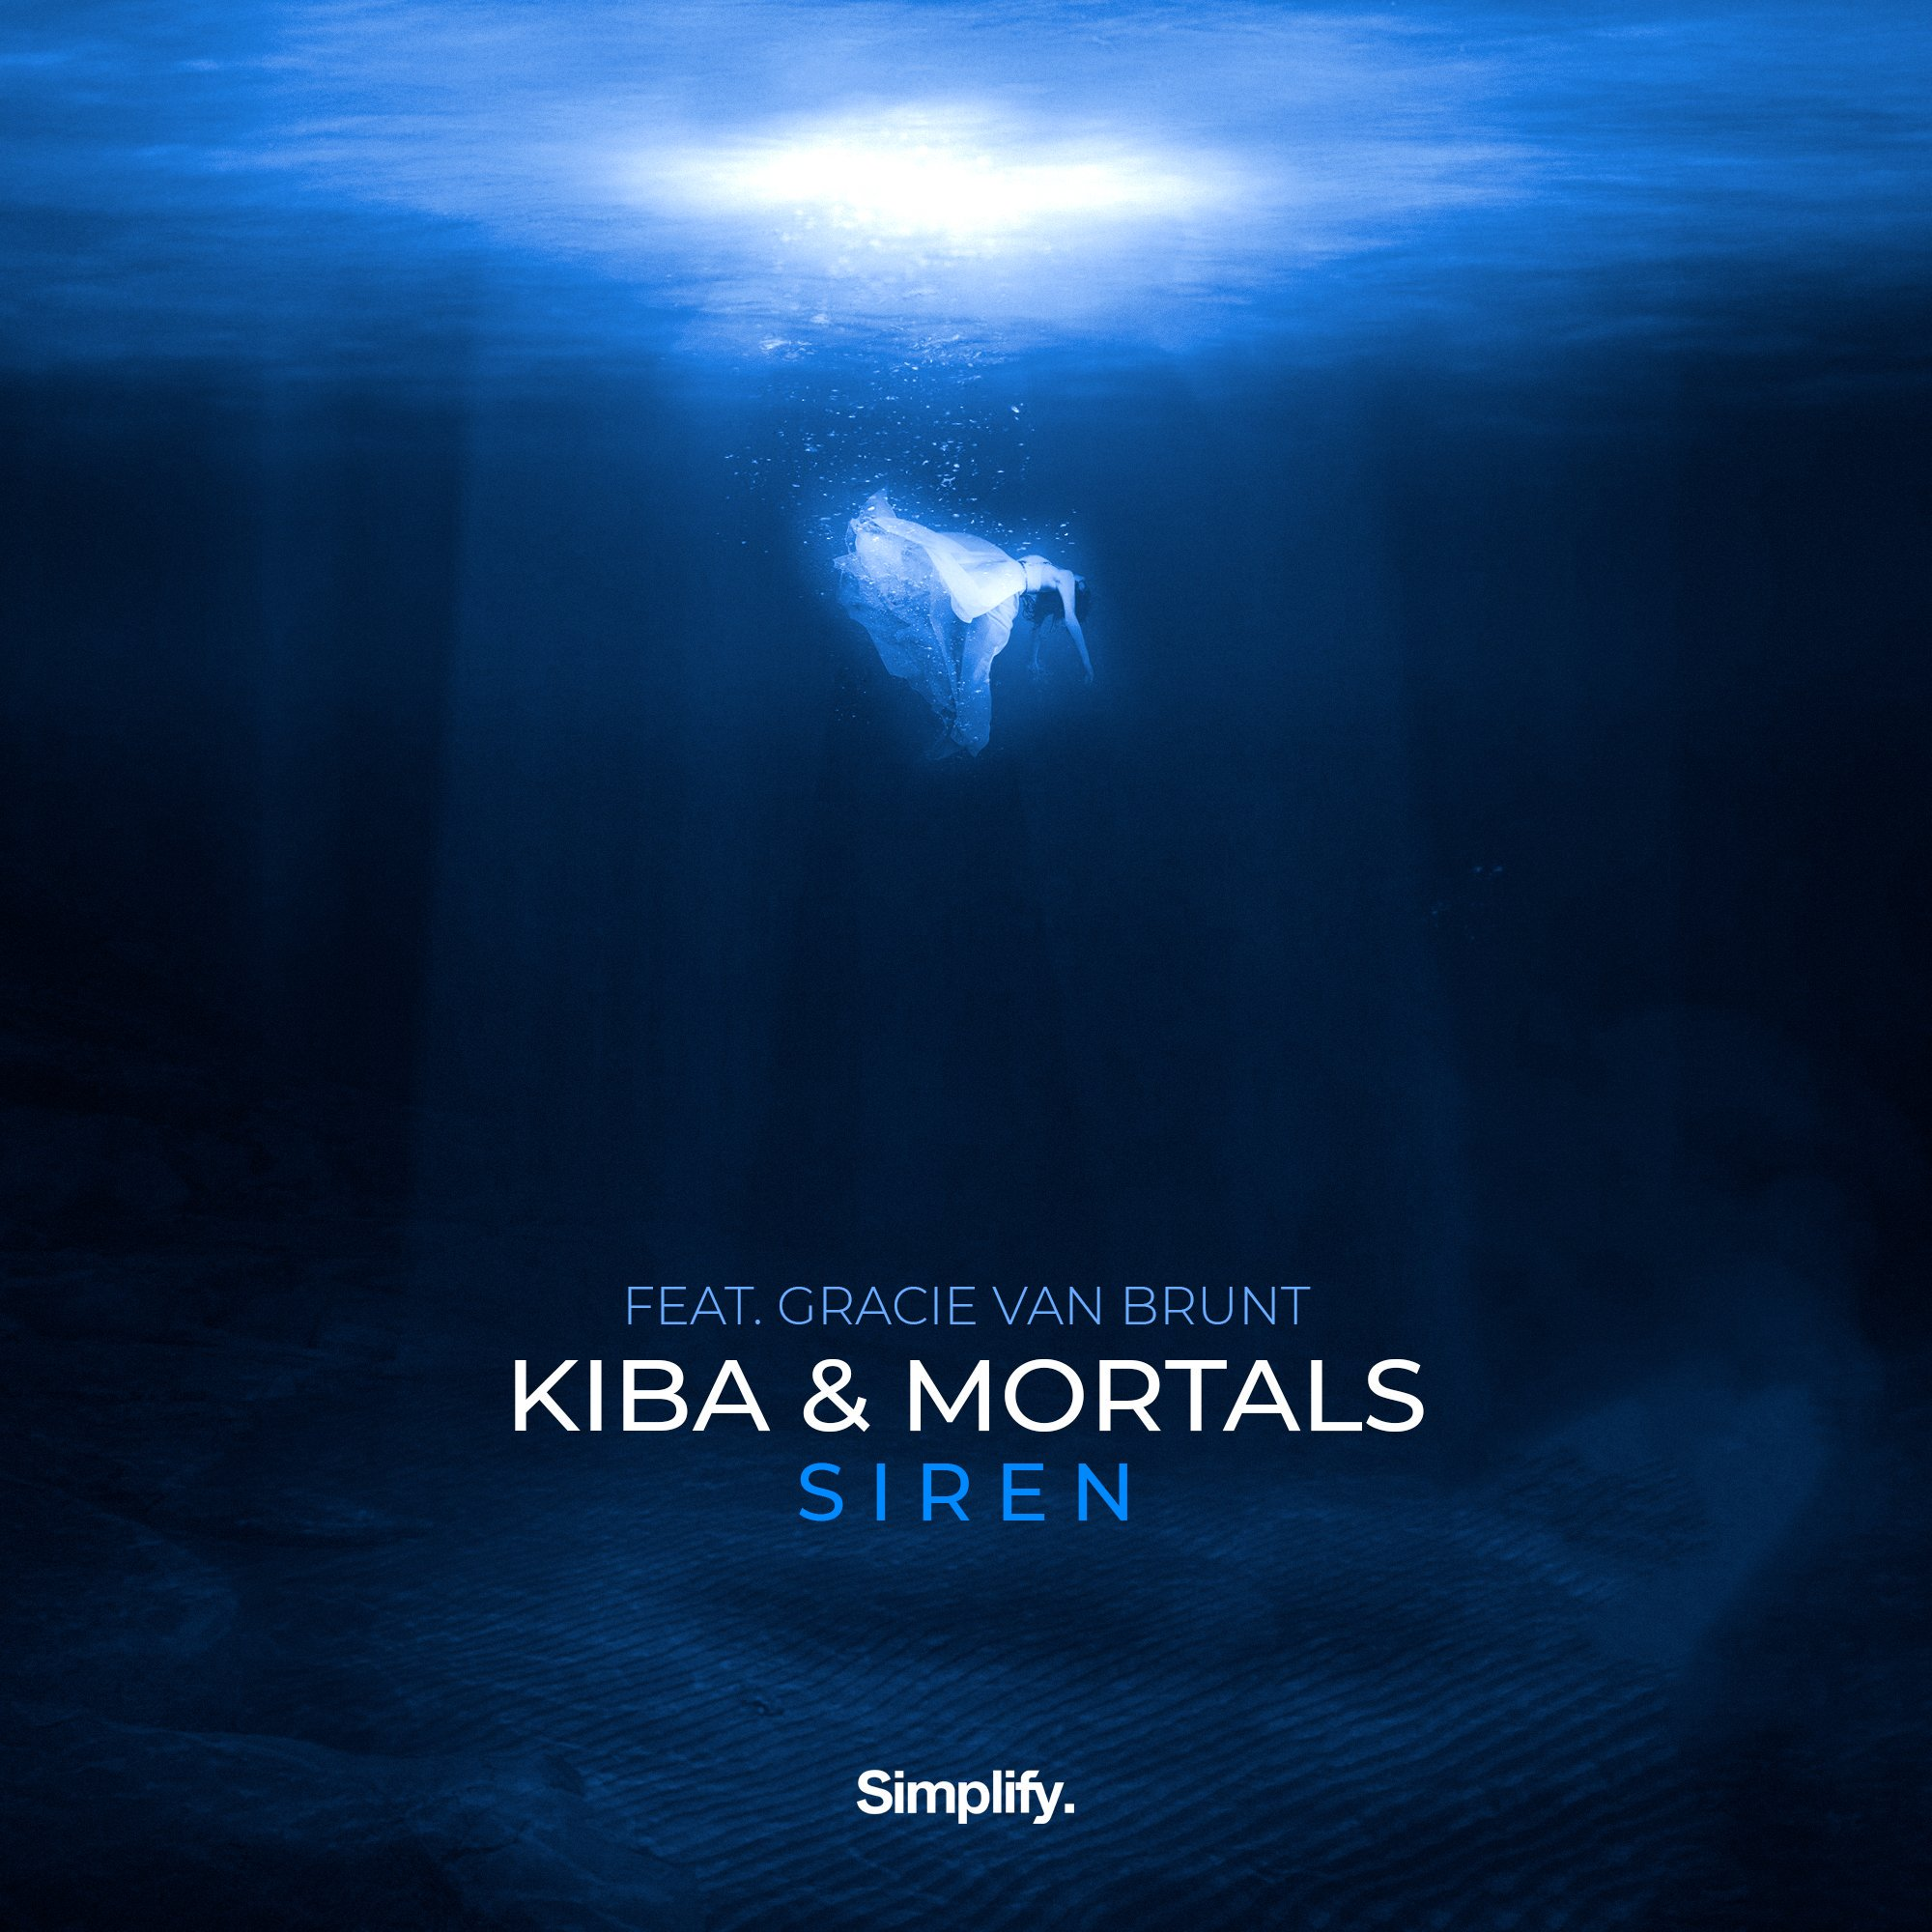 FEATURED LOCAL MUSIC: Siren by Kiba & Mortals